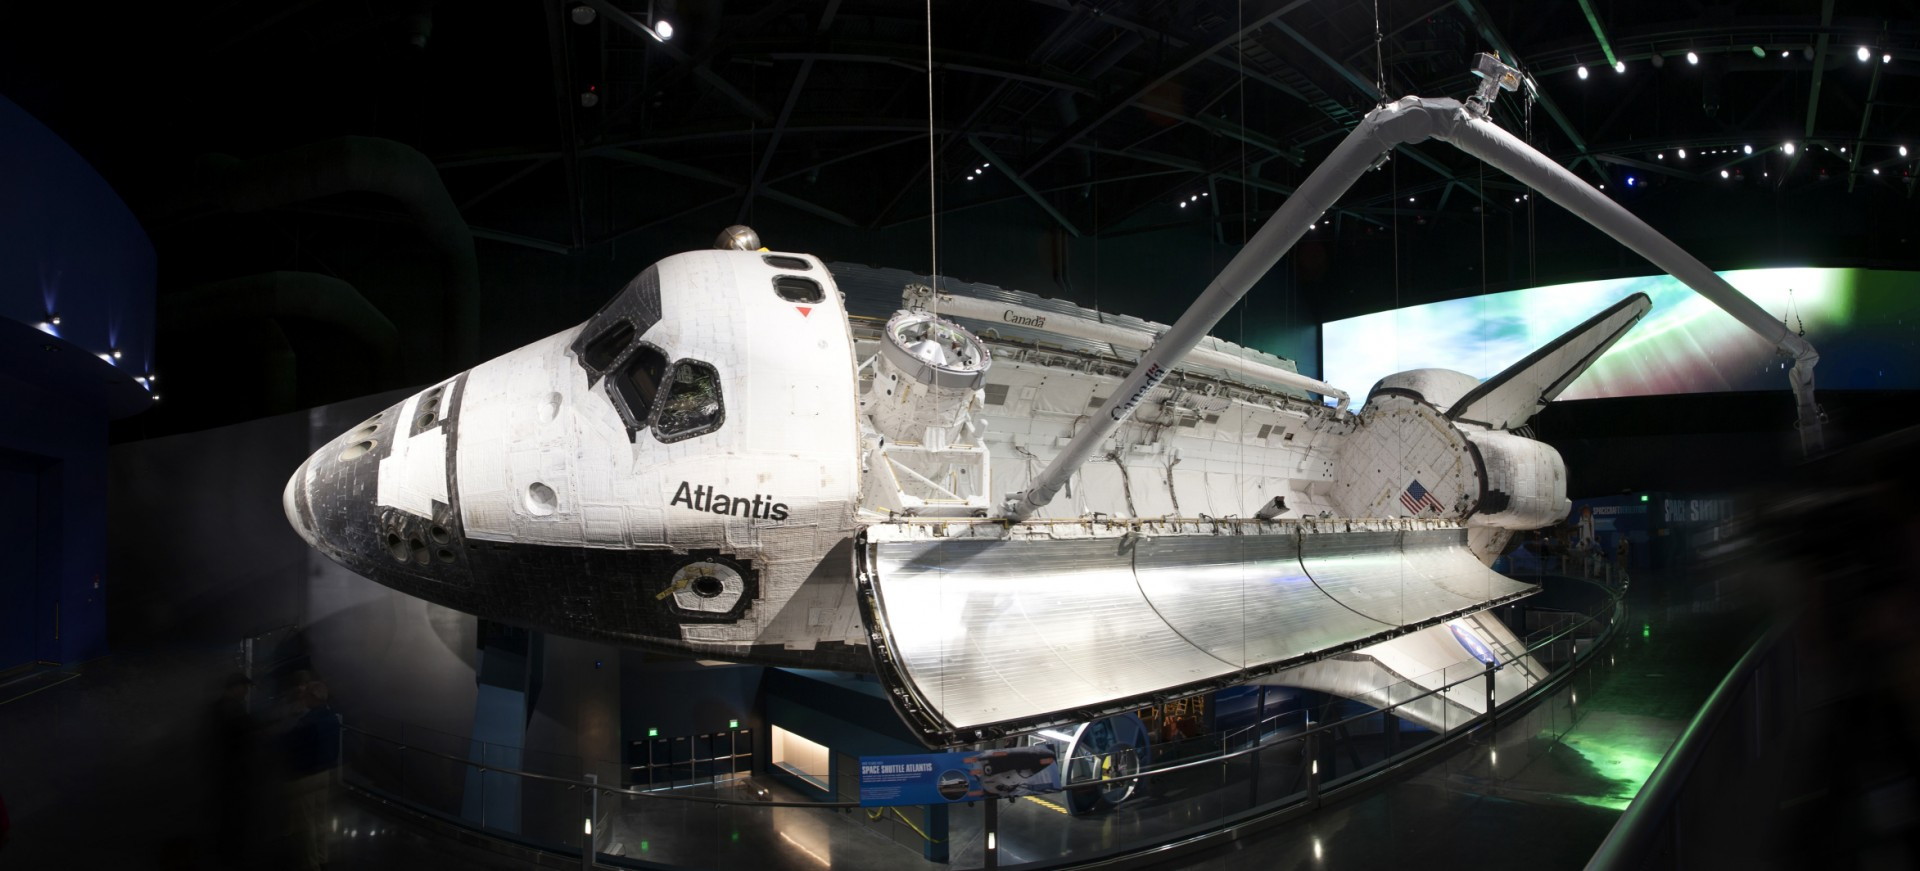 To ensure reliability and to simplify maintenance issues, the Kennedy Space Center required the use of LED fixtures for the shuttle's illumination.